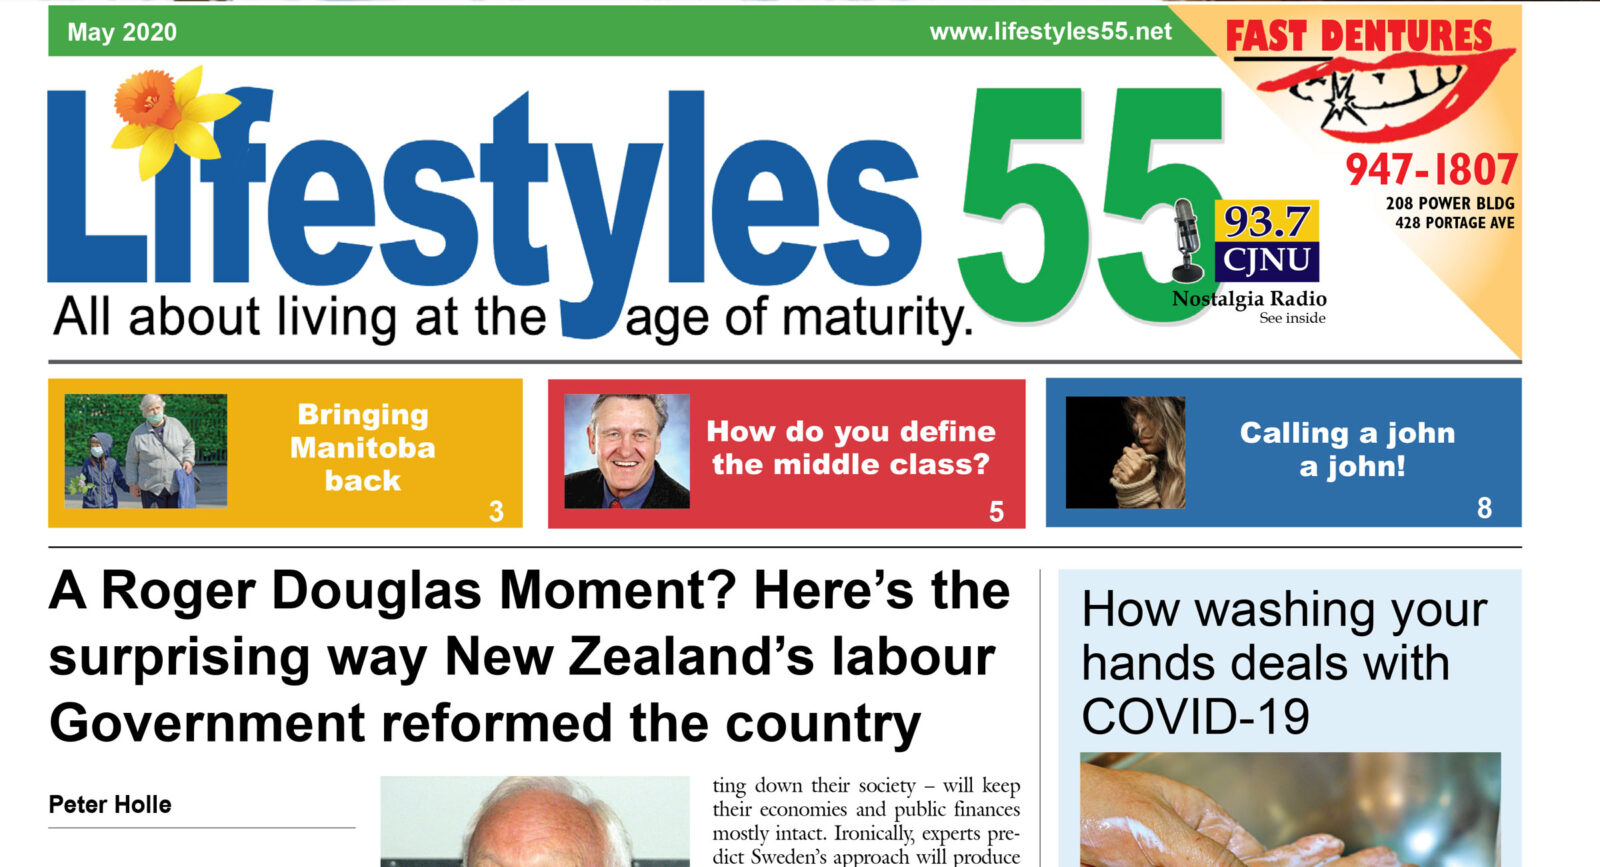 Lifestyles 55 may 2020 issue